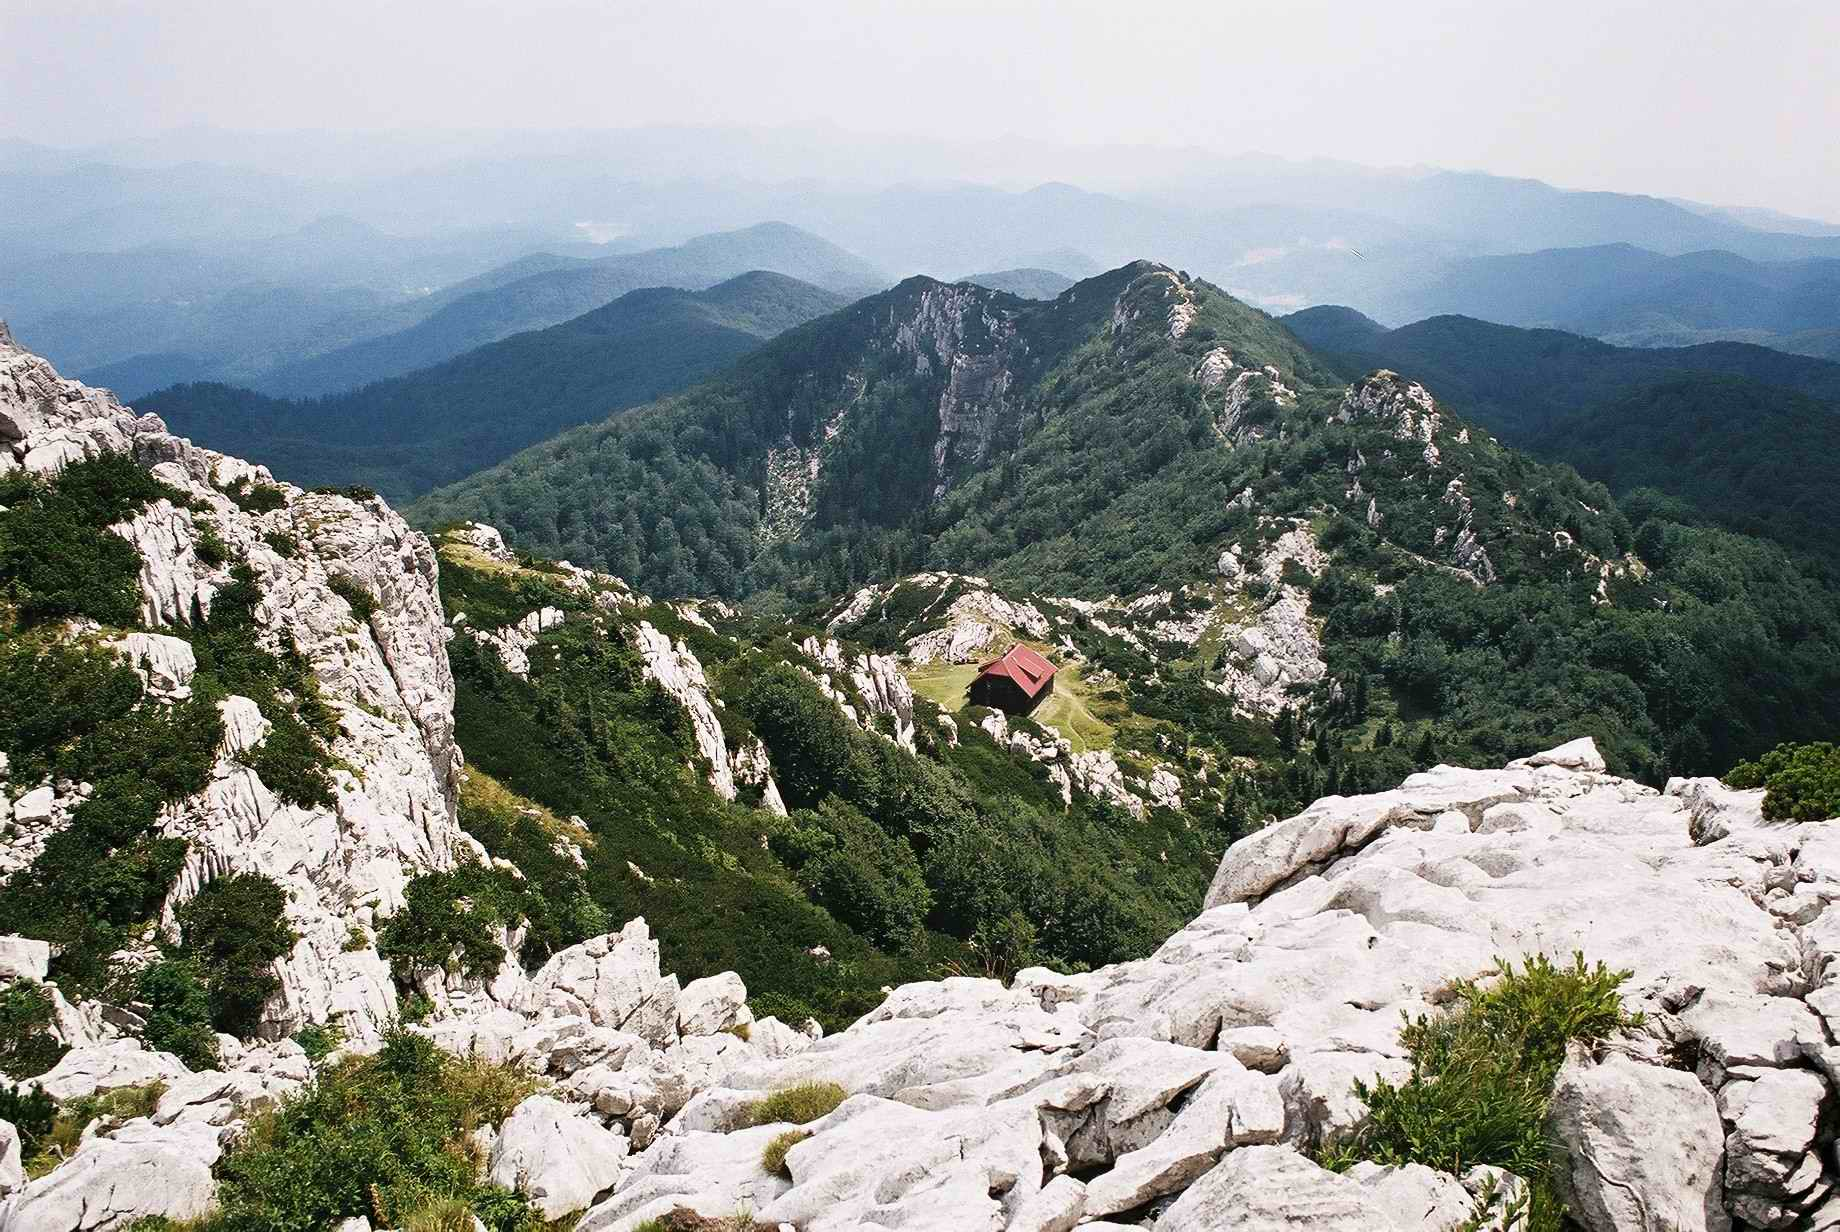 NP Risnjak, National Park, hiking, mountain, Croatia